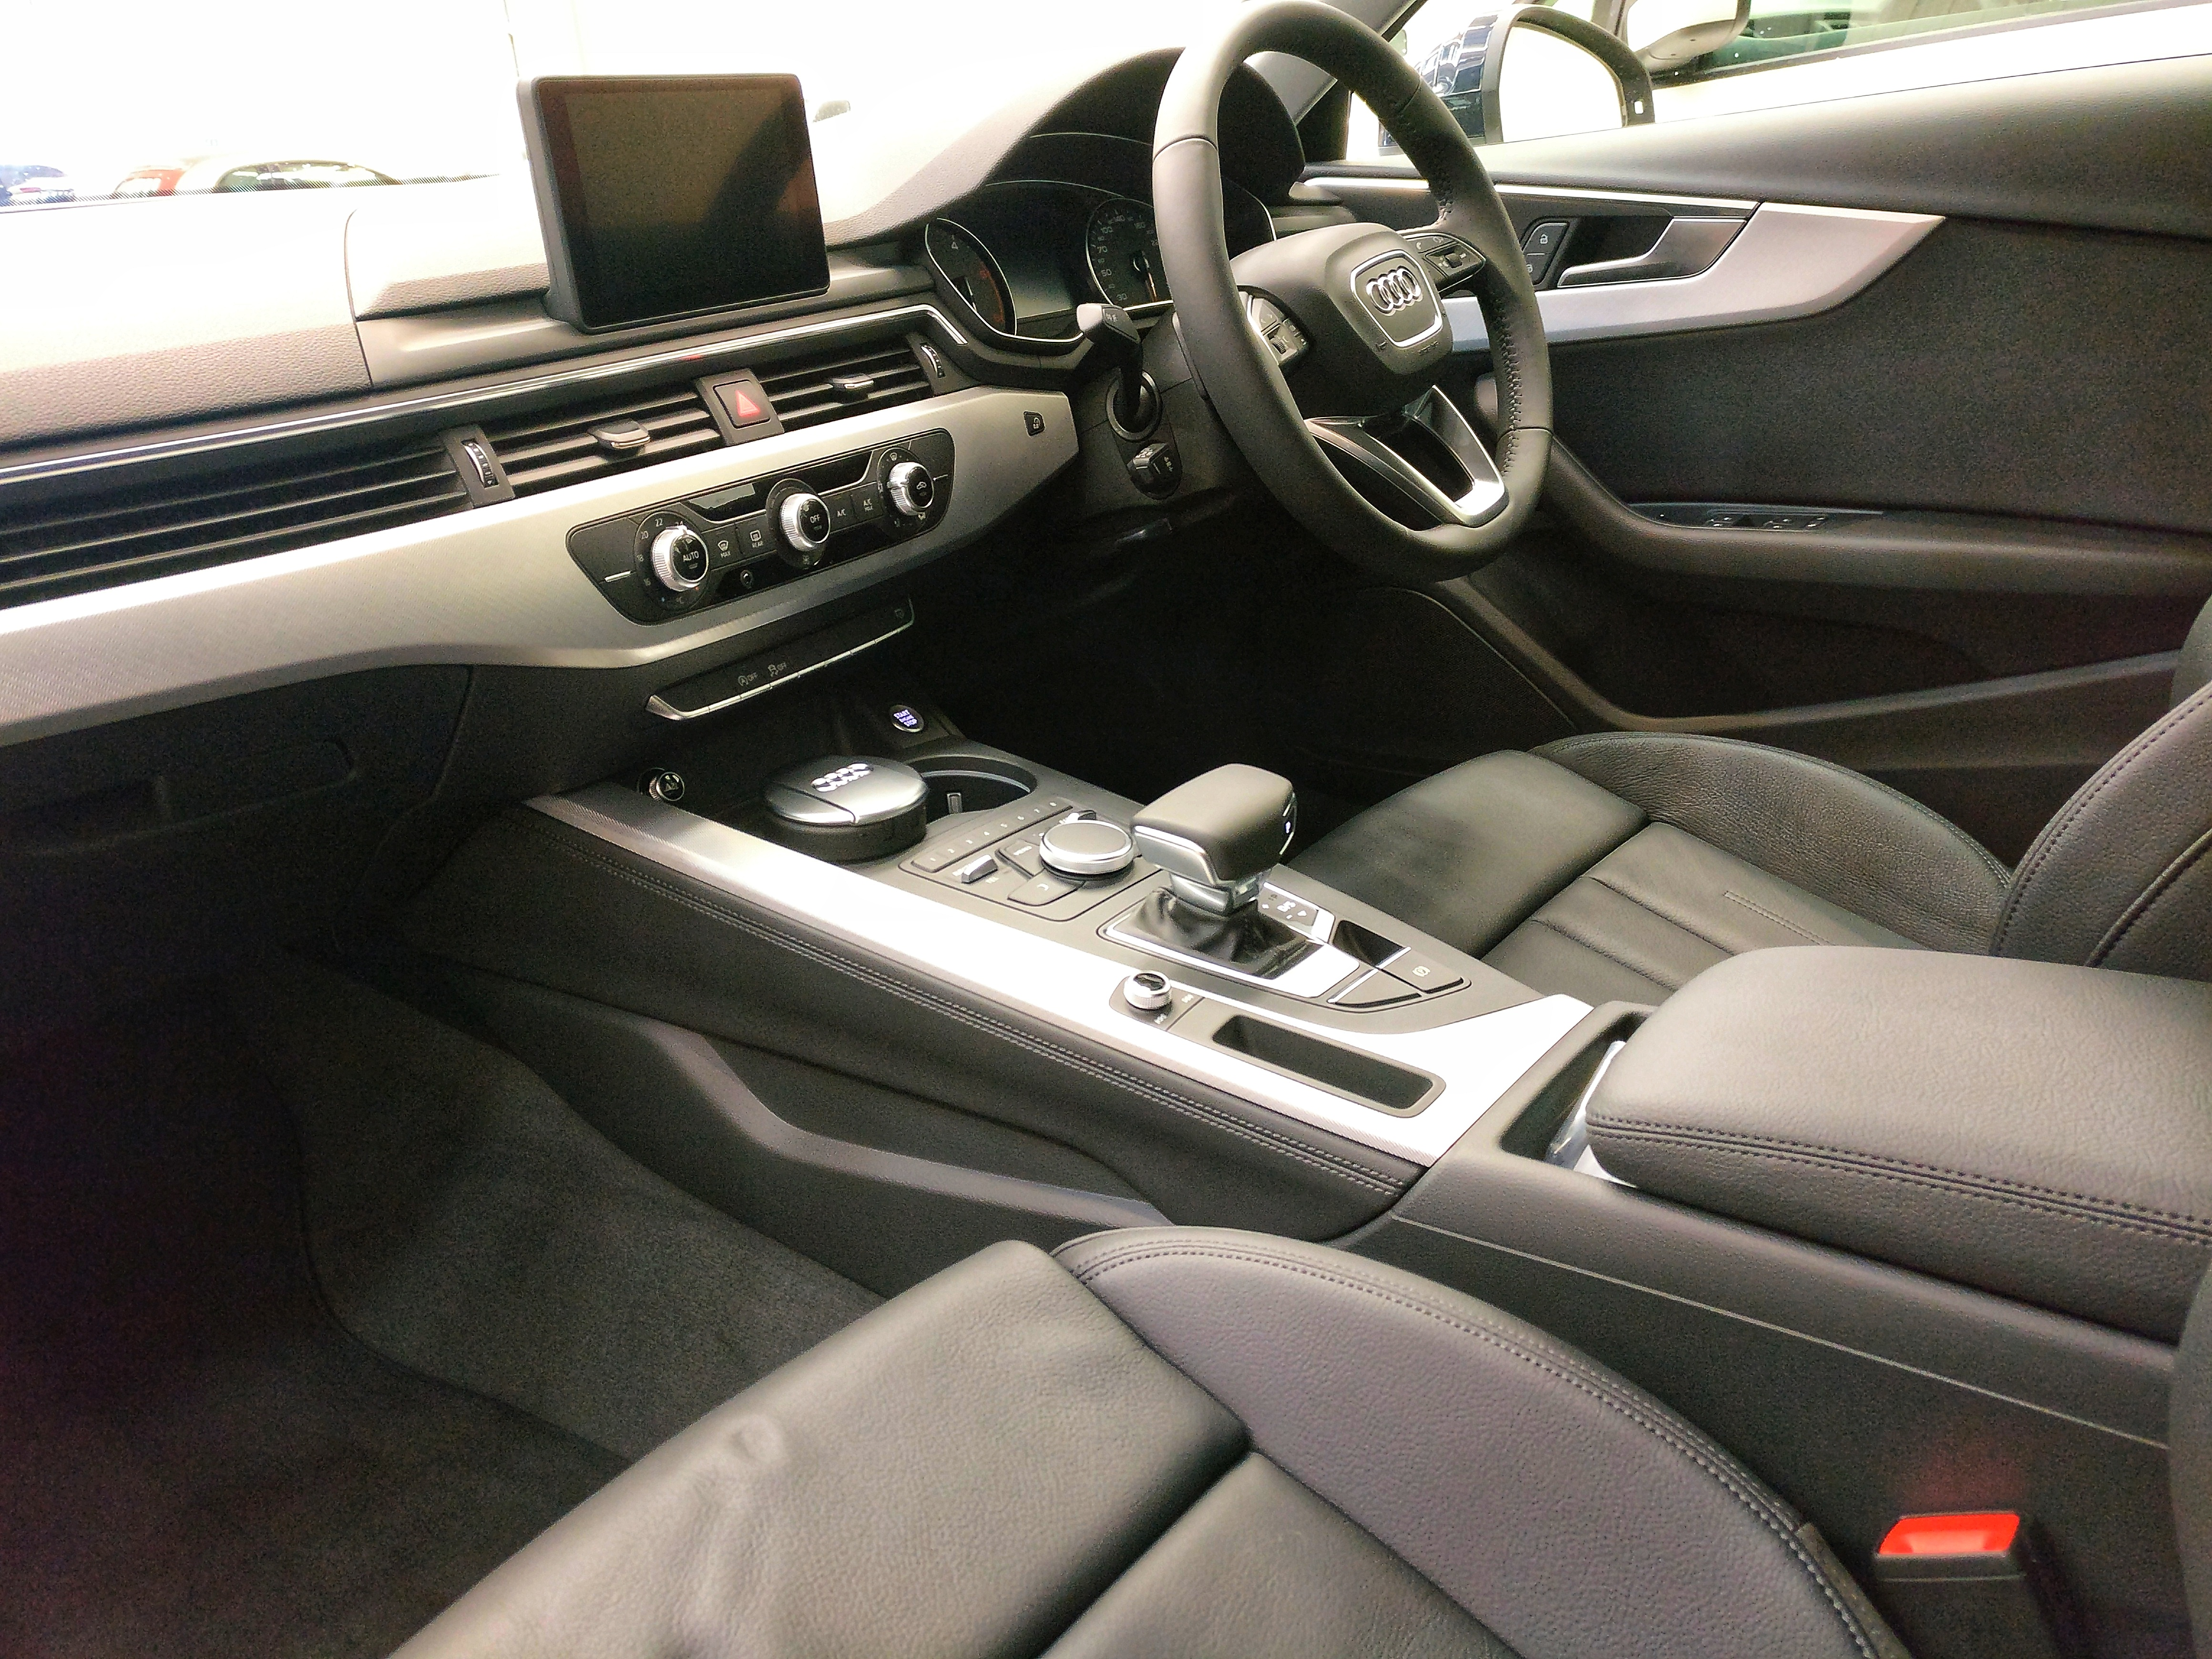 Johnson & Perrott Fleet Audi A4 Avant Edition 50 interior - Johnson ...